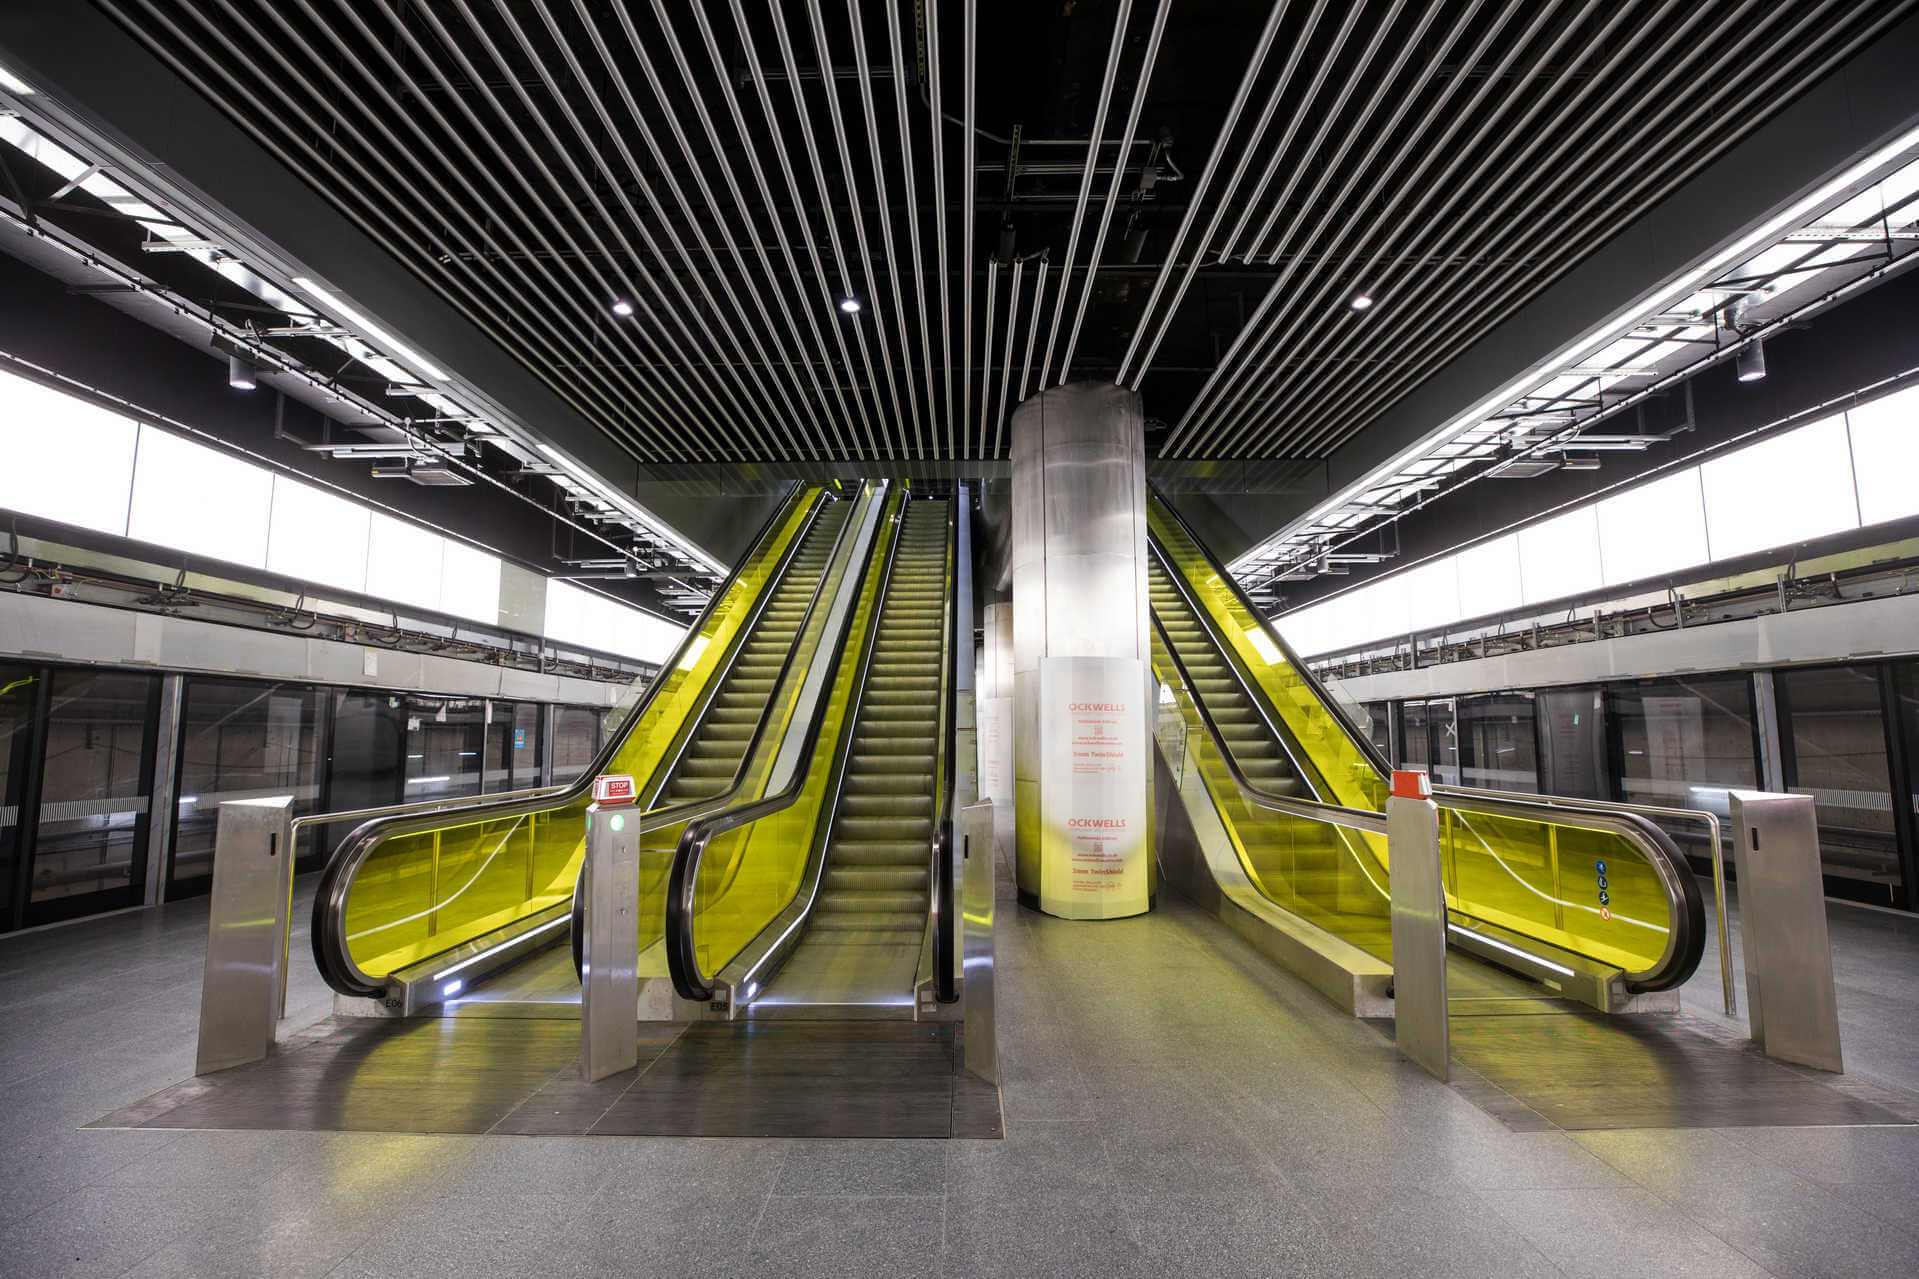 Platform-level-at-Canary-Wharf-Station.jpg